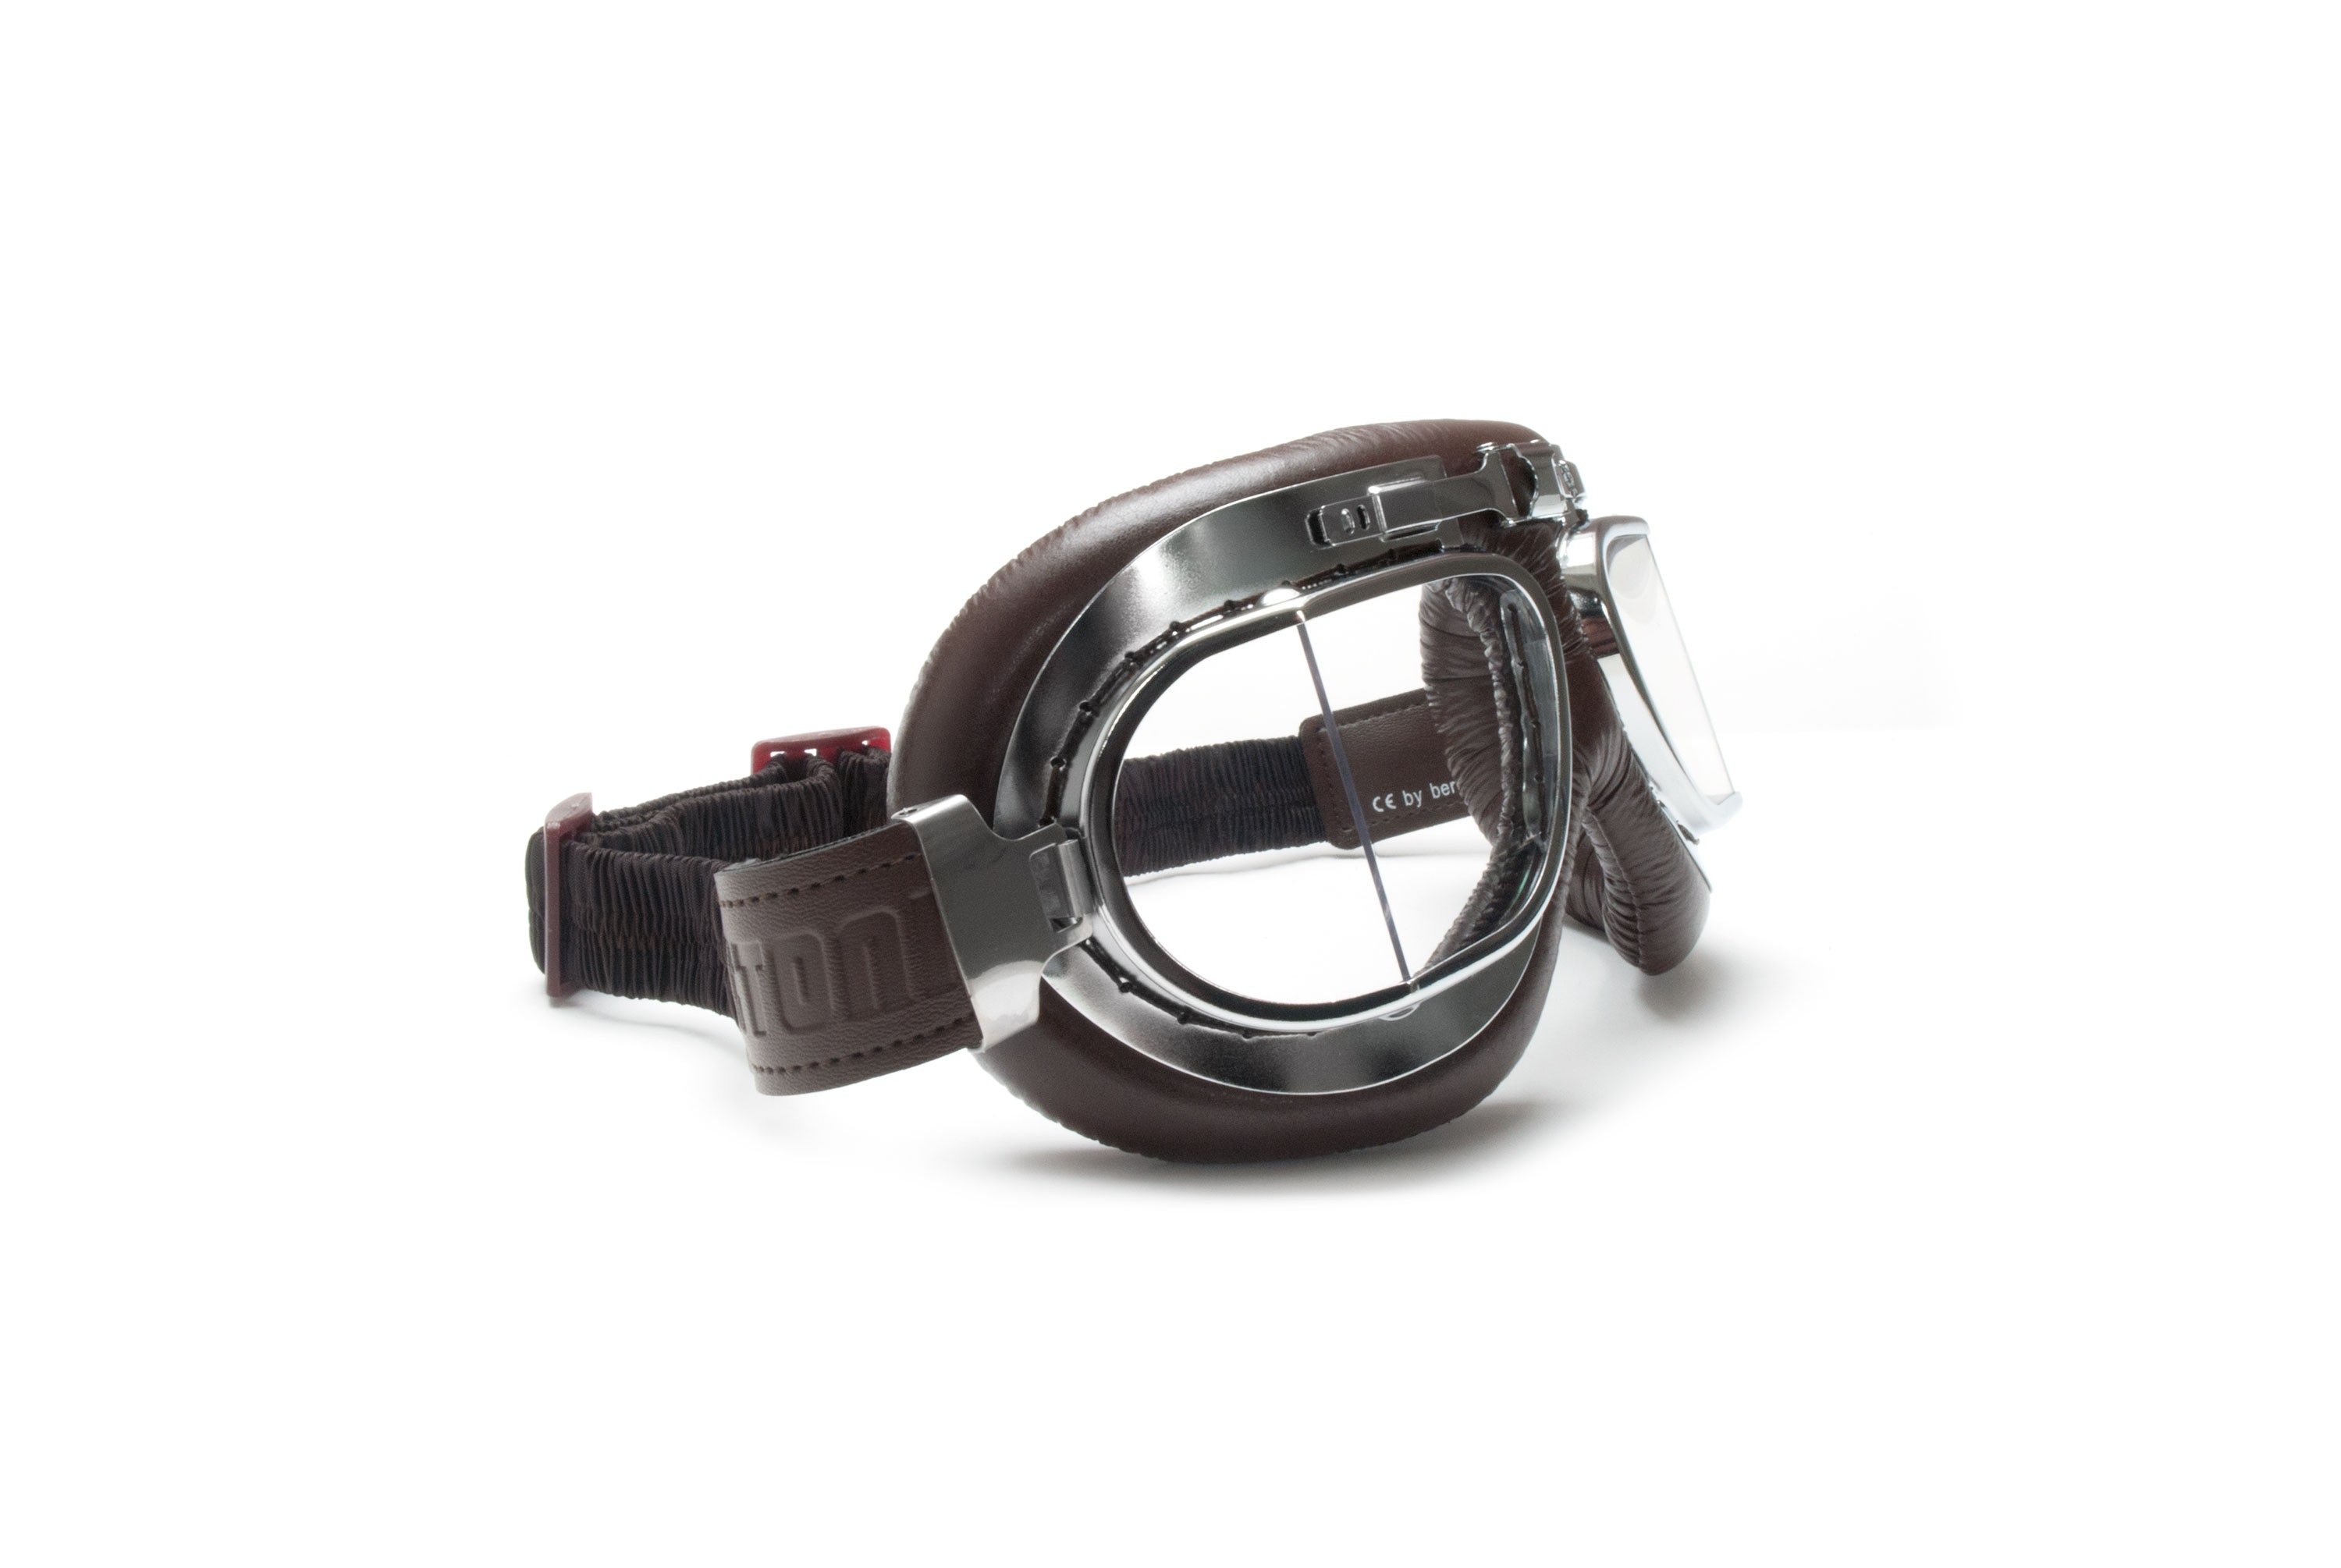 AF193CR Vintage Classic Motorcycle Brown Leather Goggles